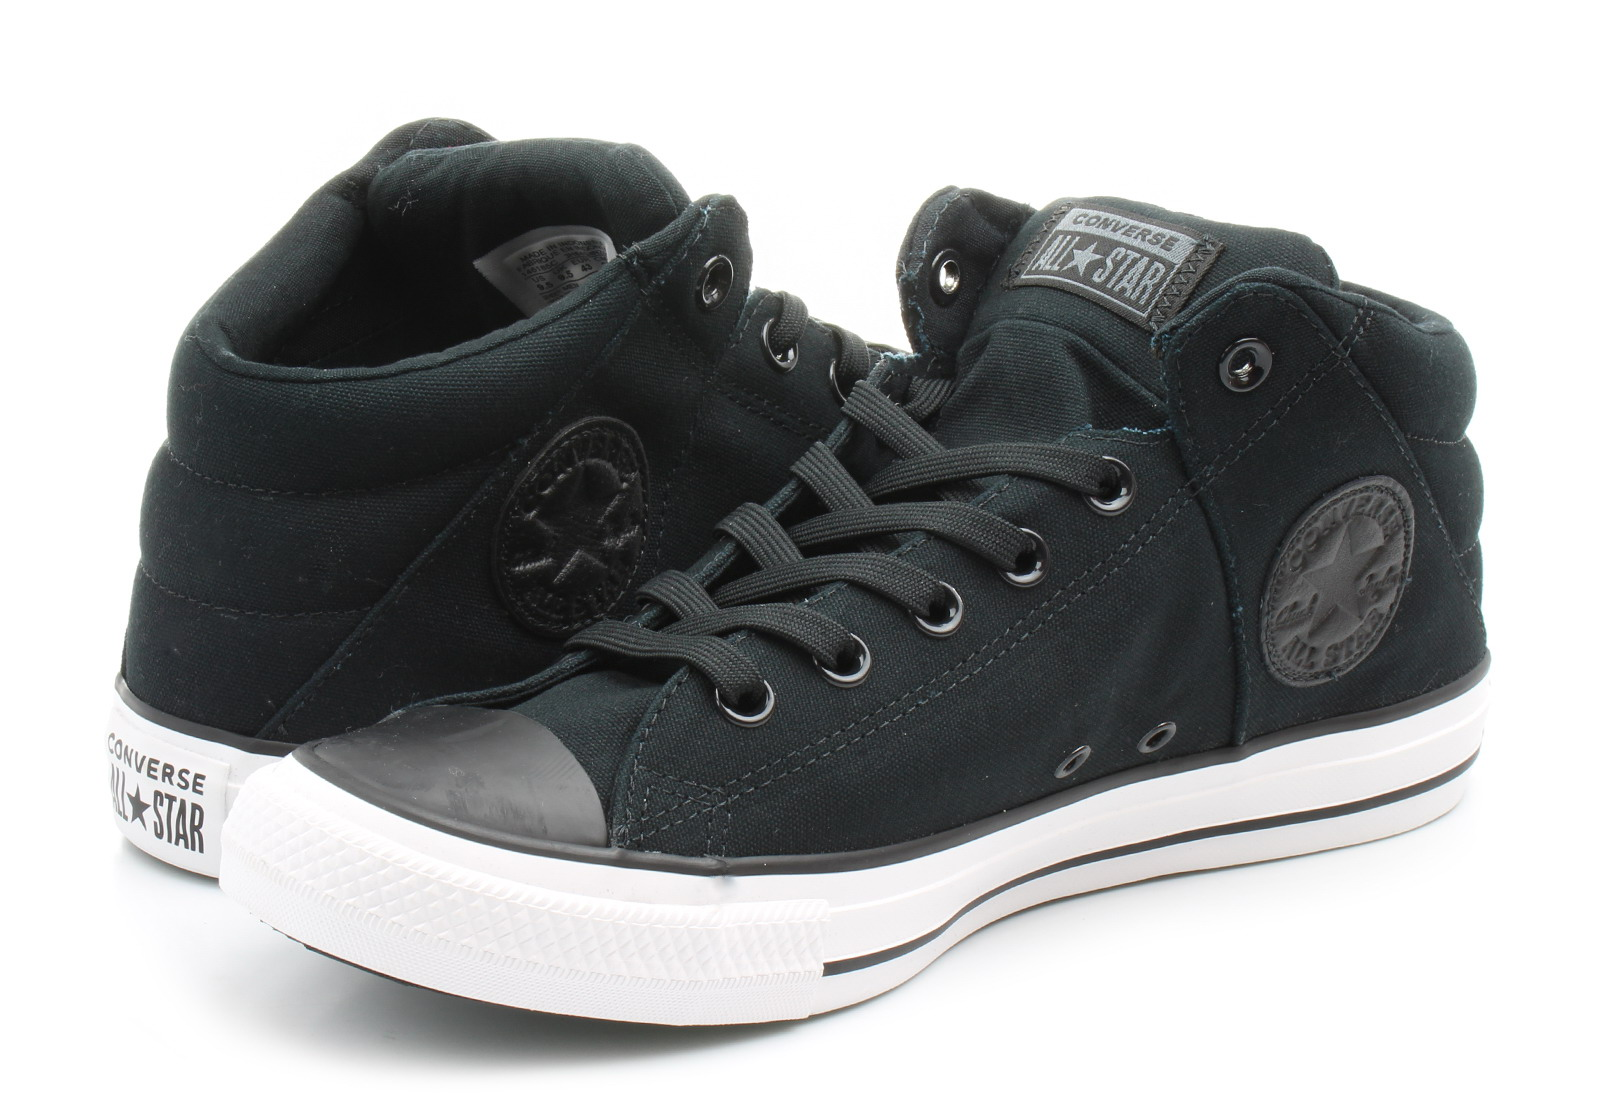 c598dcc95805 Converse Sneakers - Chuck Taylor All Star Axel Mid - 146185C ...